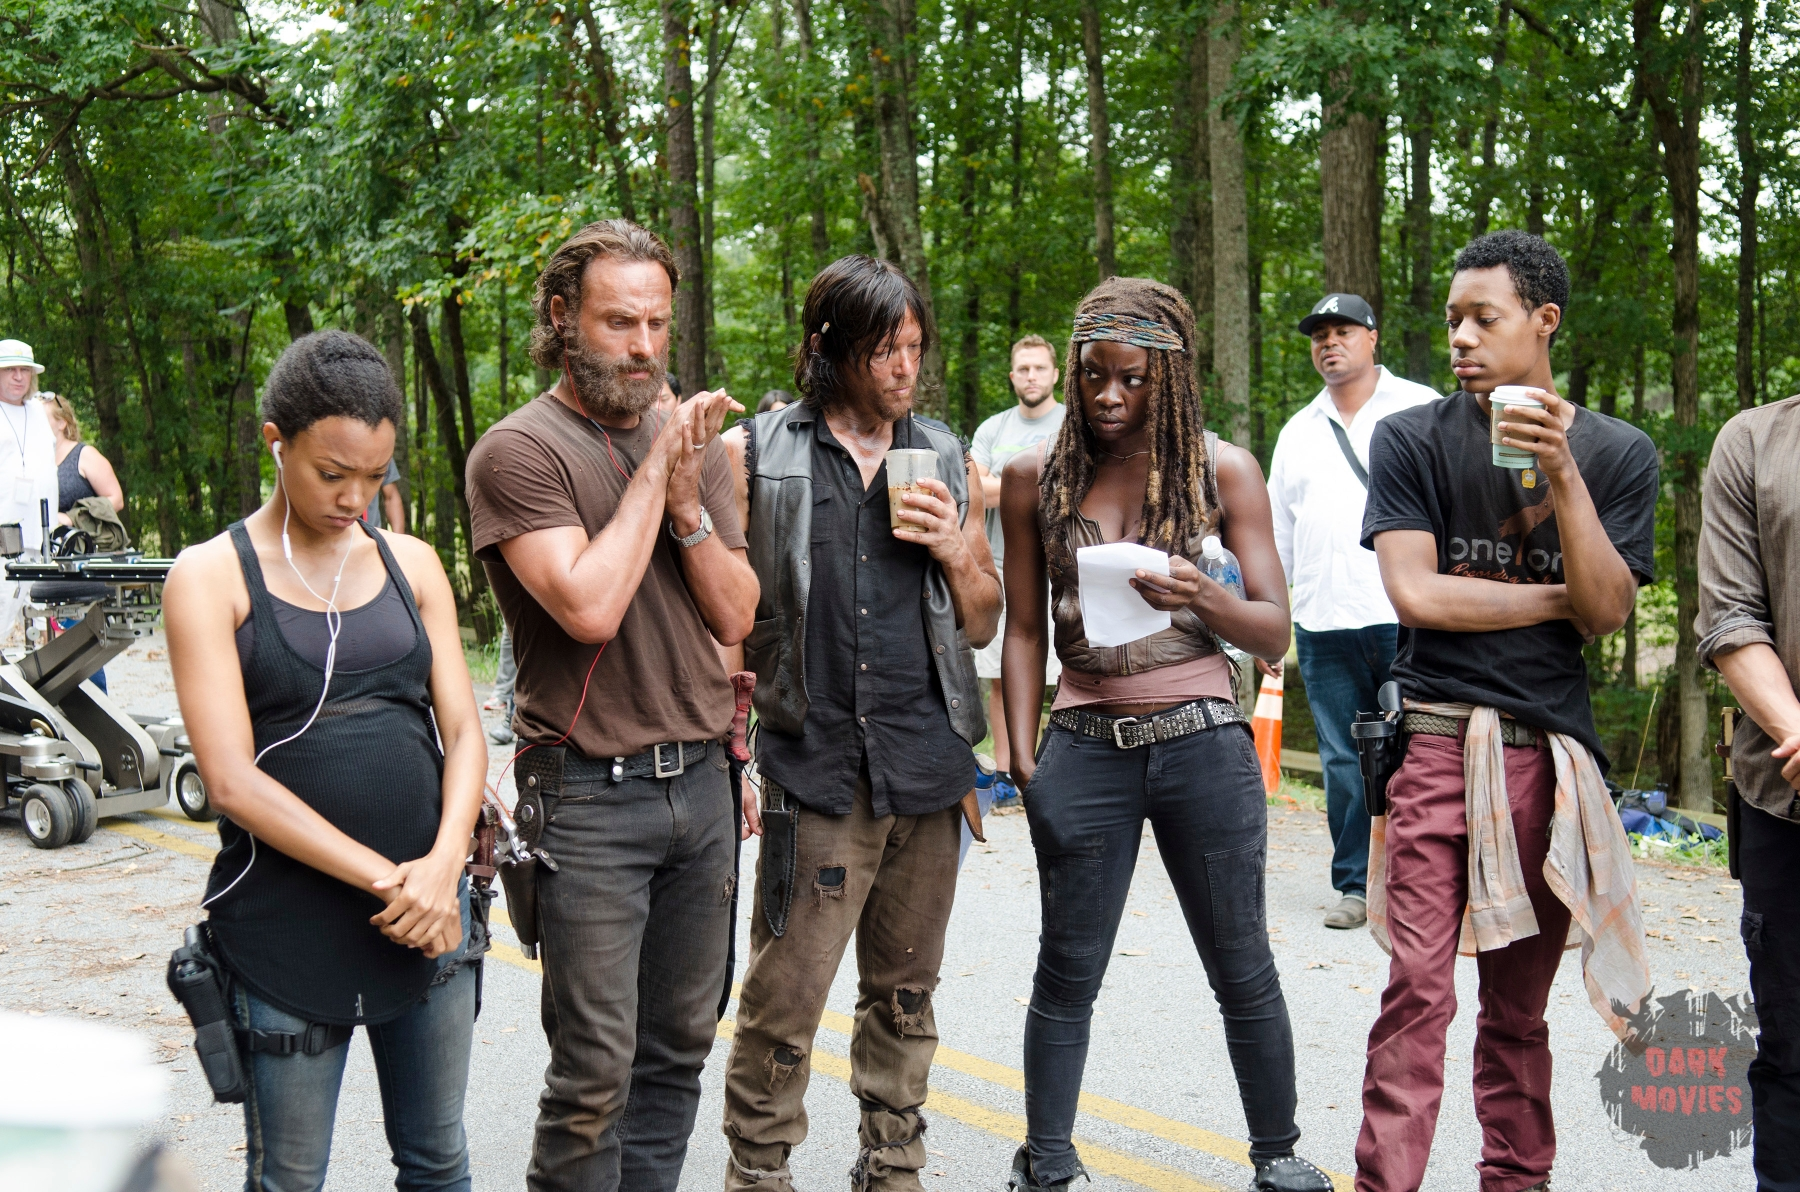 Sonequa Martin-Green, Andrew Lincoln, Norman Reedus, Danai Gurira and Tyler James Williams - The Walking Dead _ Season 5, Episode 10 _ BTS - Photo Credit: Gene Page/AMC